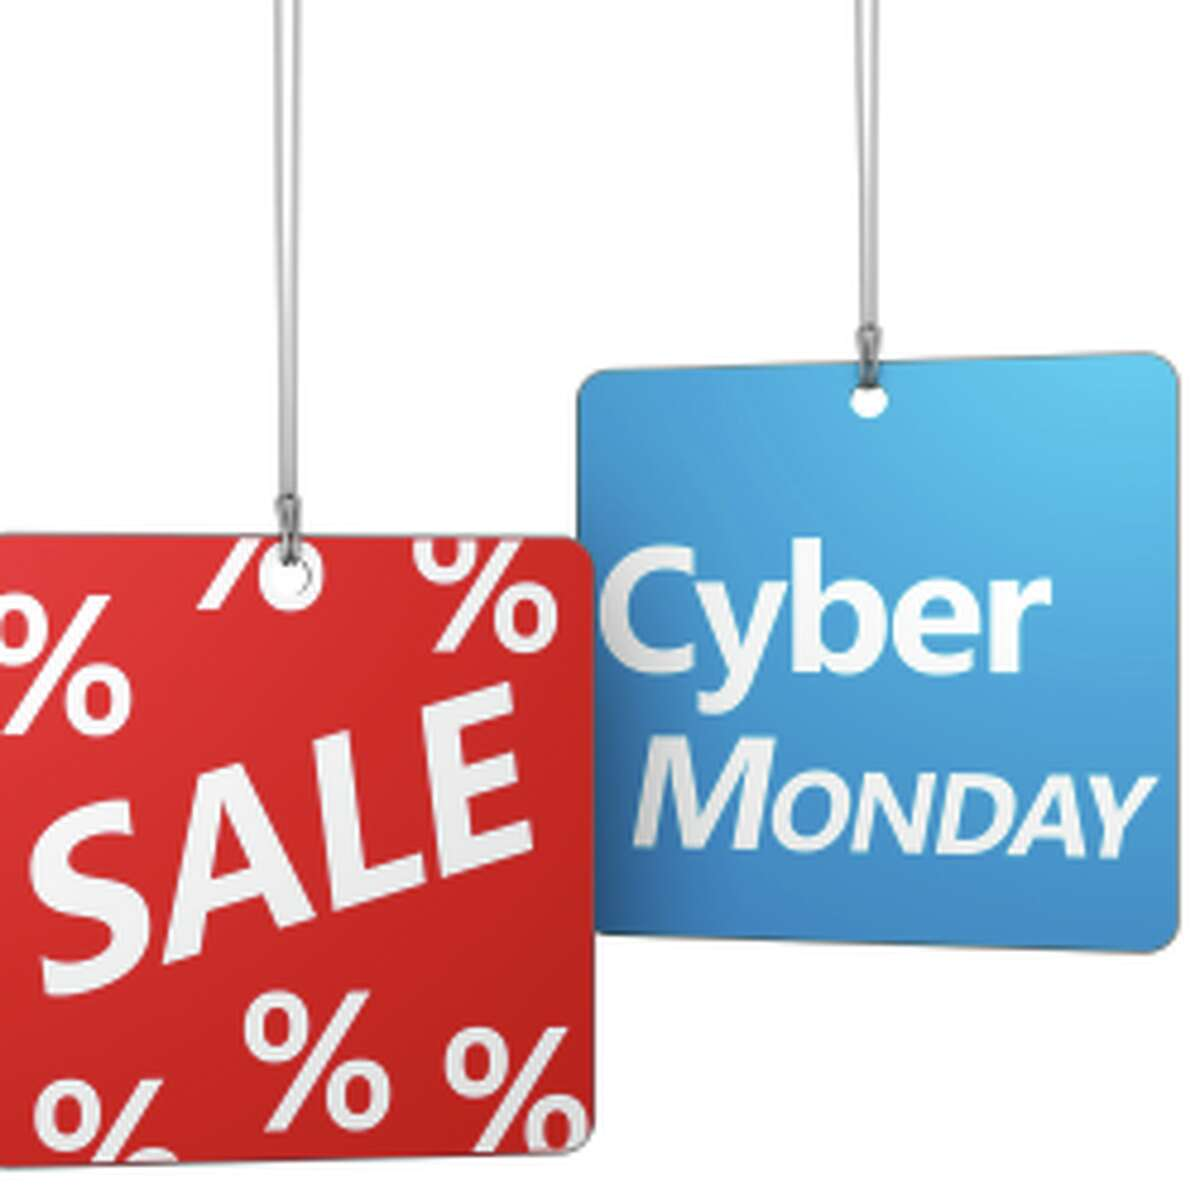 You Have to Shop Online on Cyber Monday It's true that most deals are found online the Monday following Black Friday. However, since clothing is usually one of the most popular items on sale that day, stores will often offer coupons good for both online and in-store use.